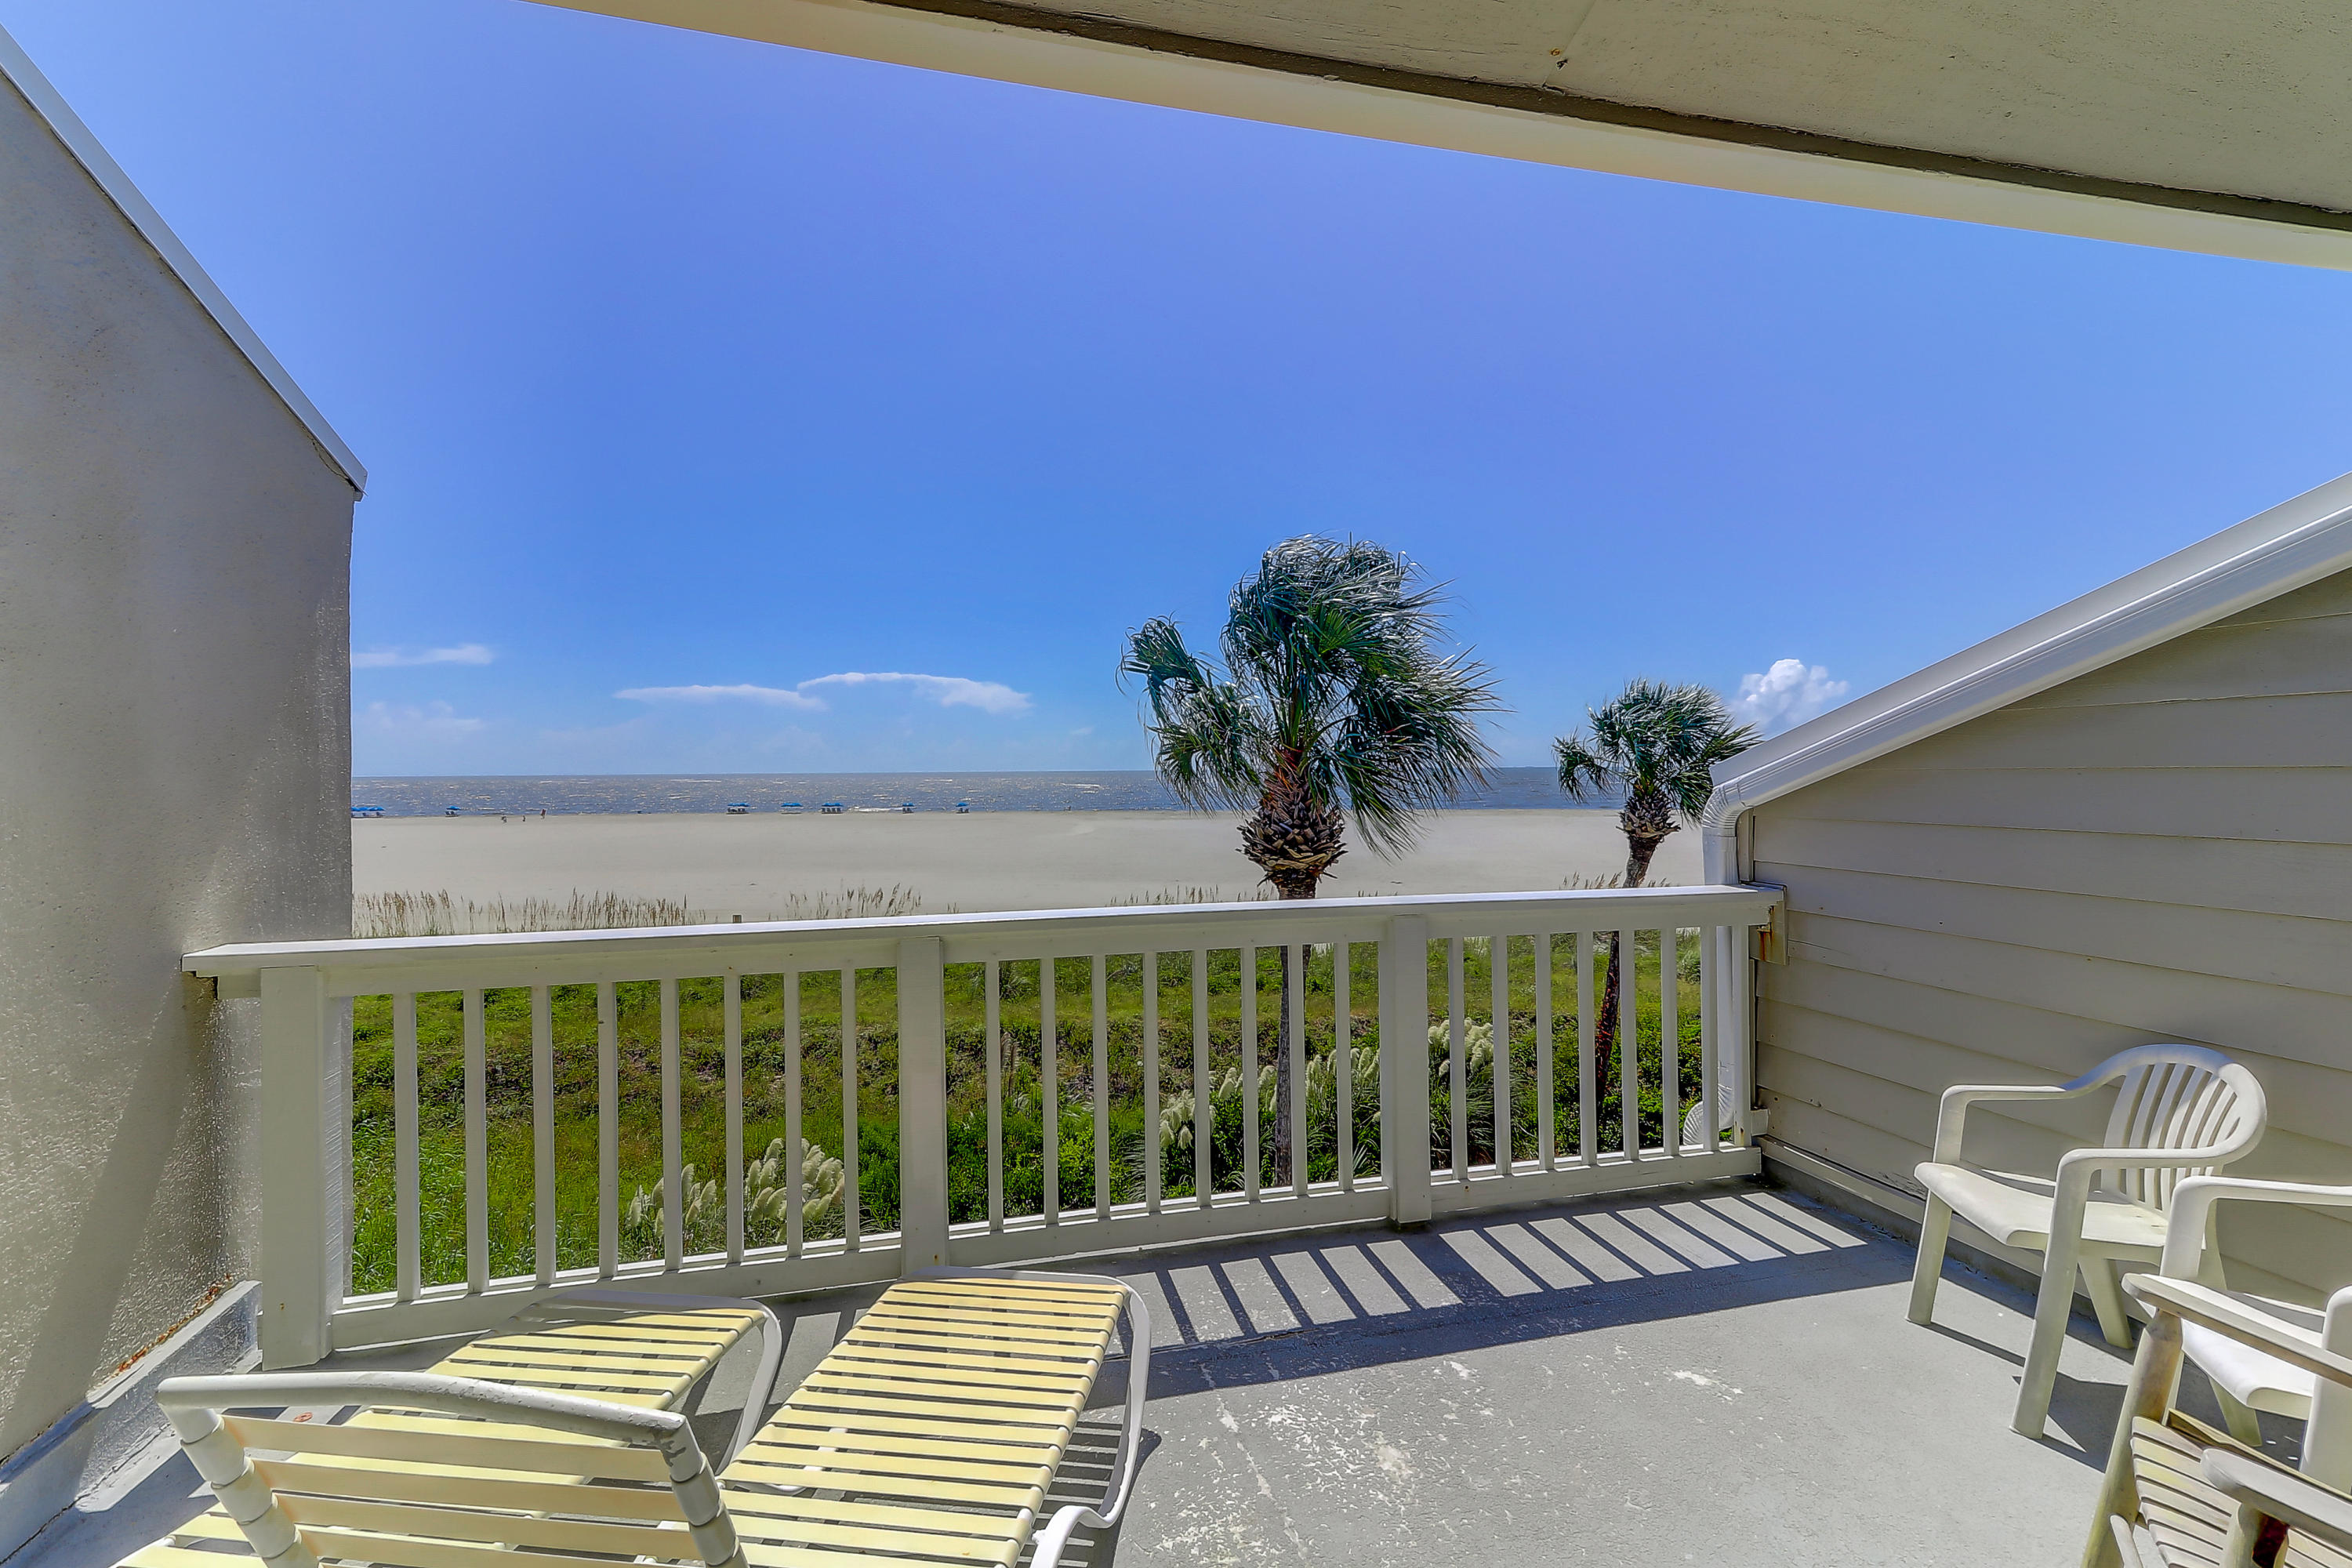 Beach Club Villas Homes For Sale - 33 Beach Club Villas, Isle of Palms, SC - 14